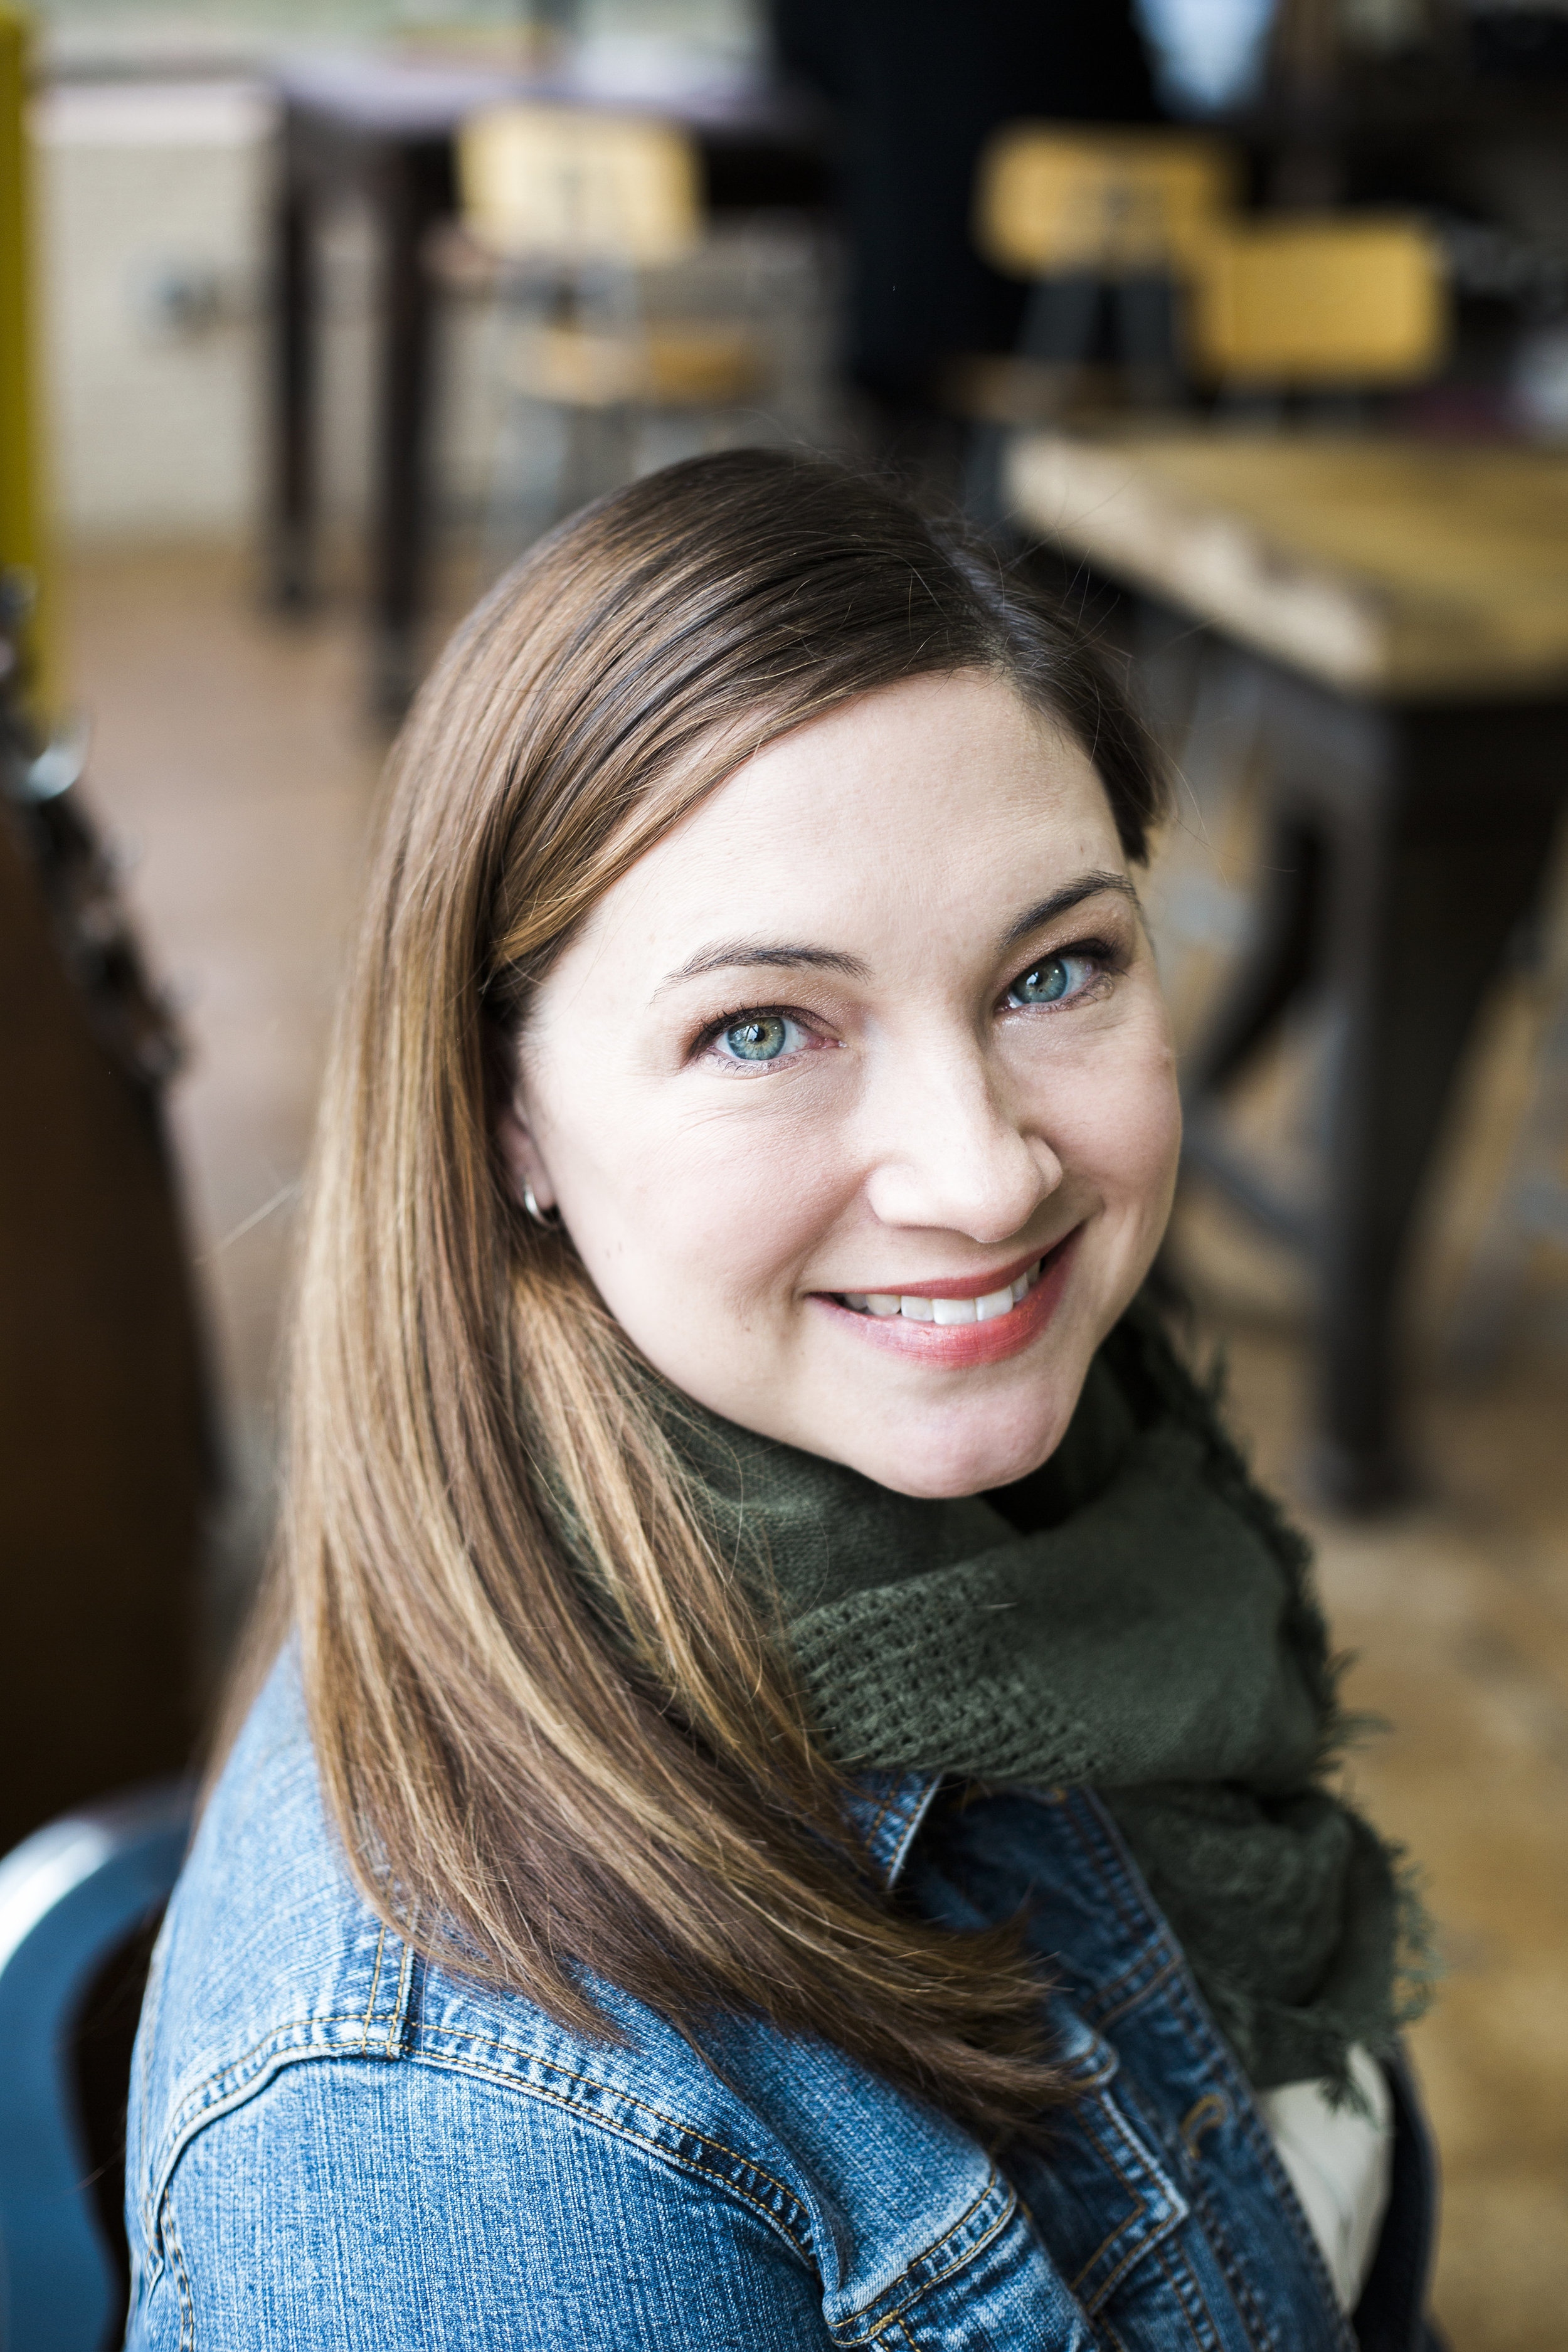 Christina June writes young adult contemporary fiction when she's not writing college recommendation letters during her day job as a school counselor. She loves the little moments in life that help someone discover who they're meant to become – whether it's her students or her characters.